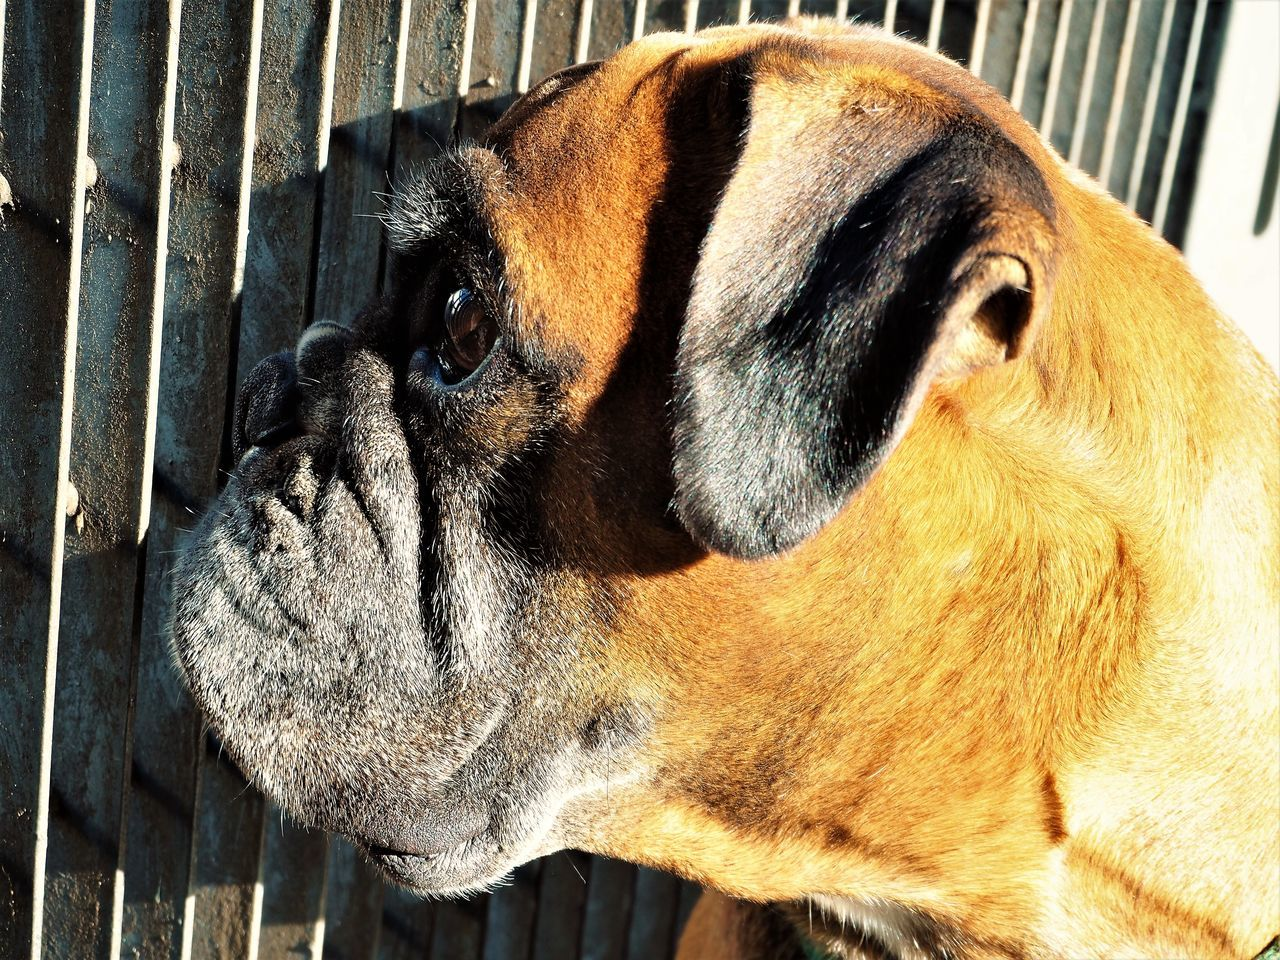 dog, pets, domestic animals, one animal, animal themes, mammal, close-up, animal body part, animal head, no people, outdoors, day